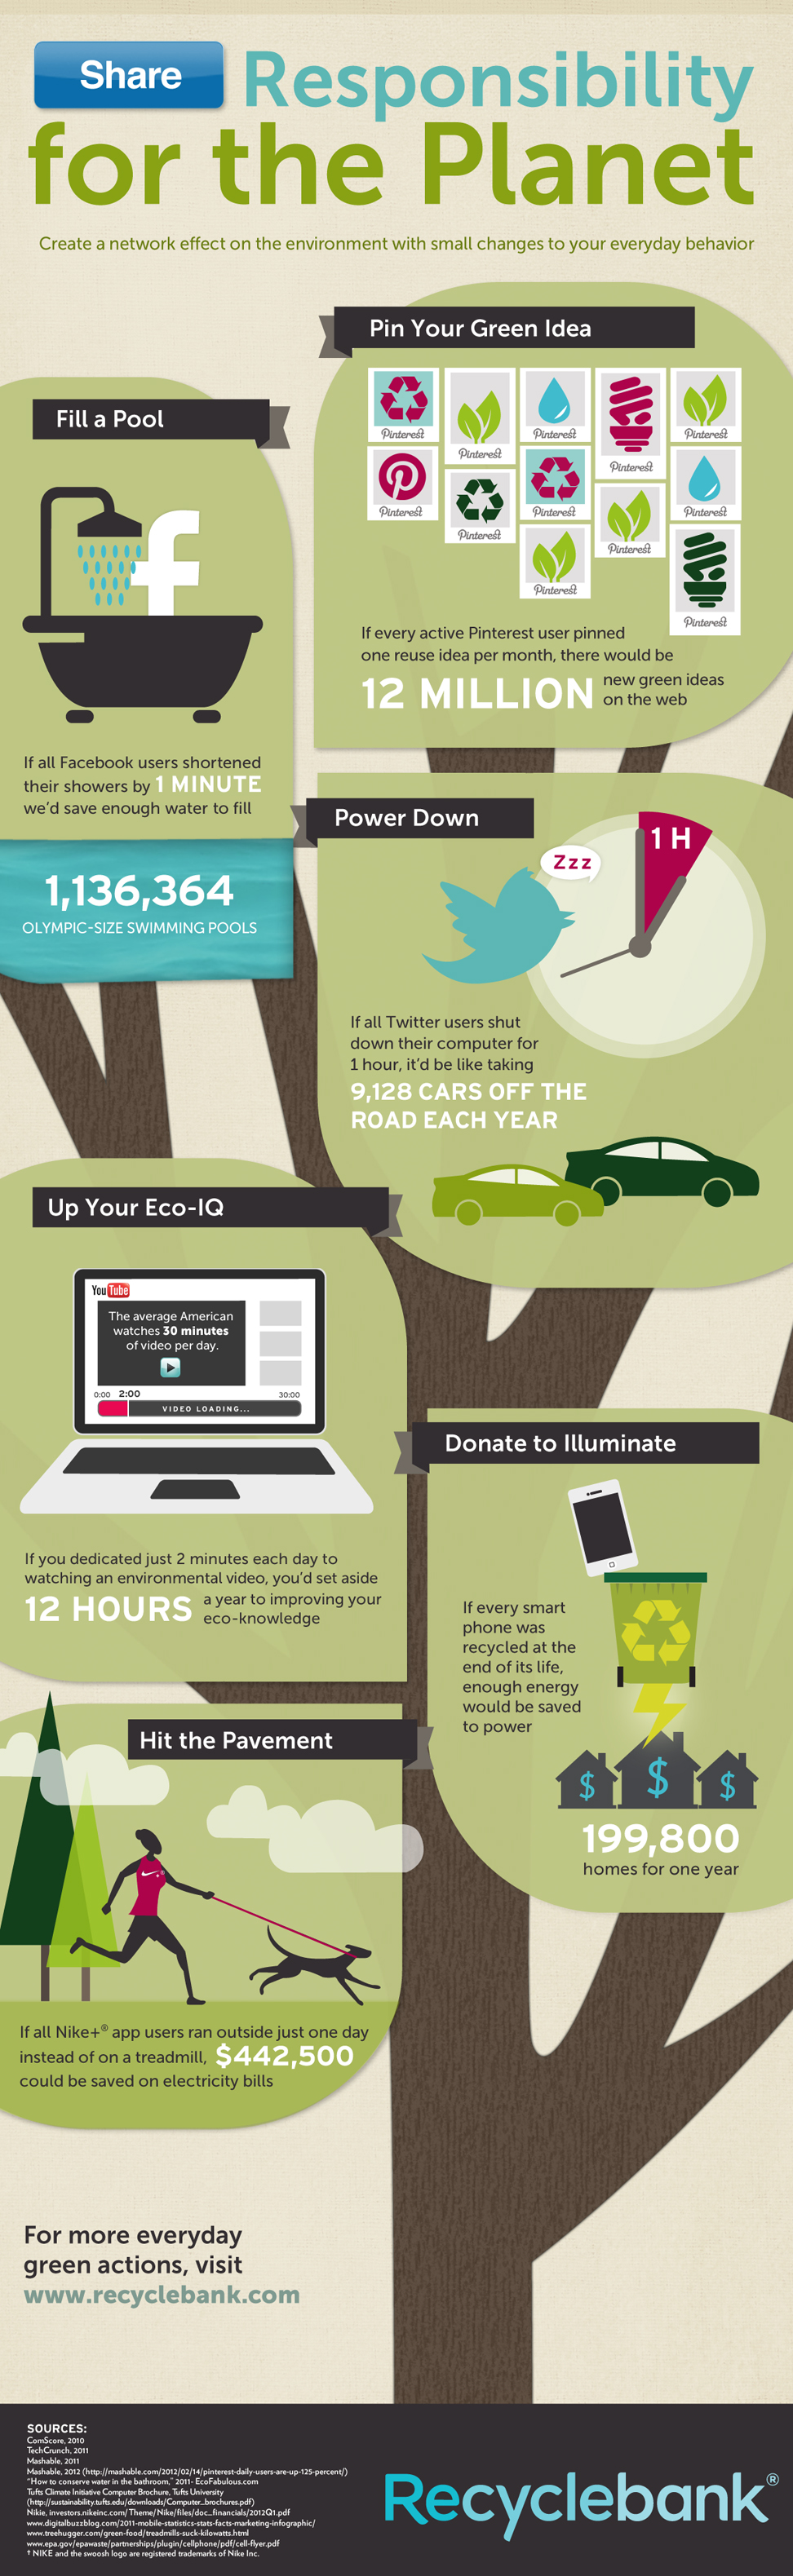 Earth Day Recyclebank Infographic